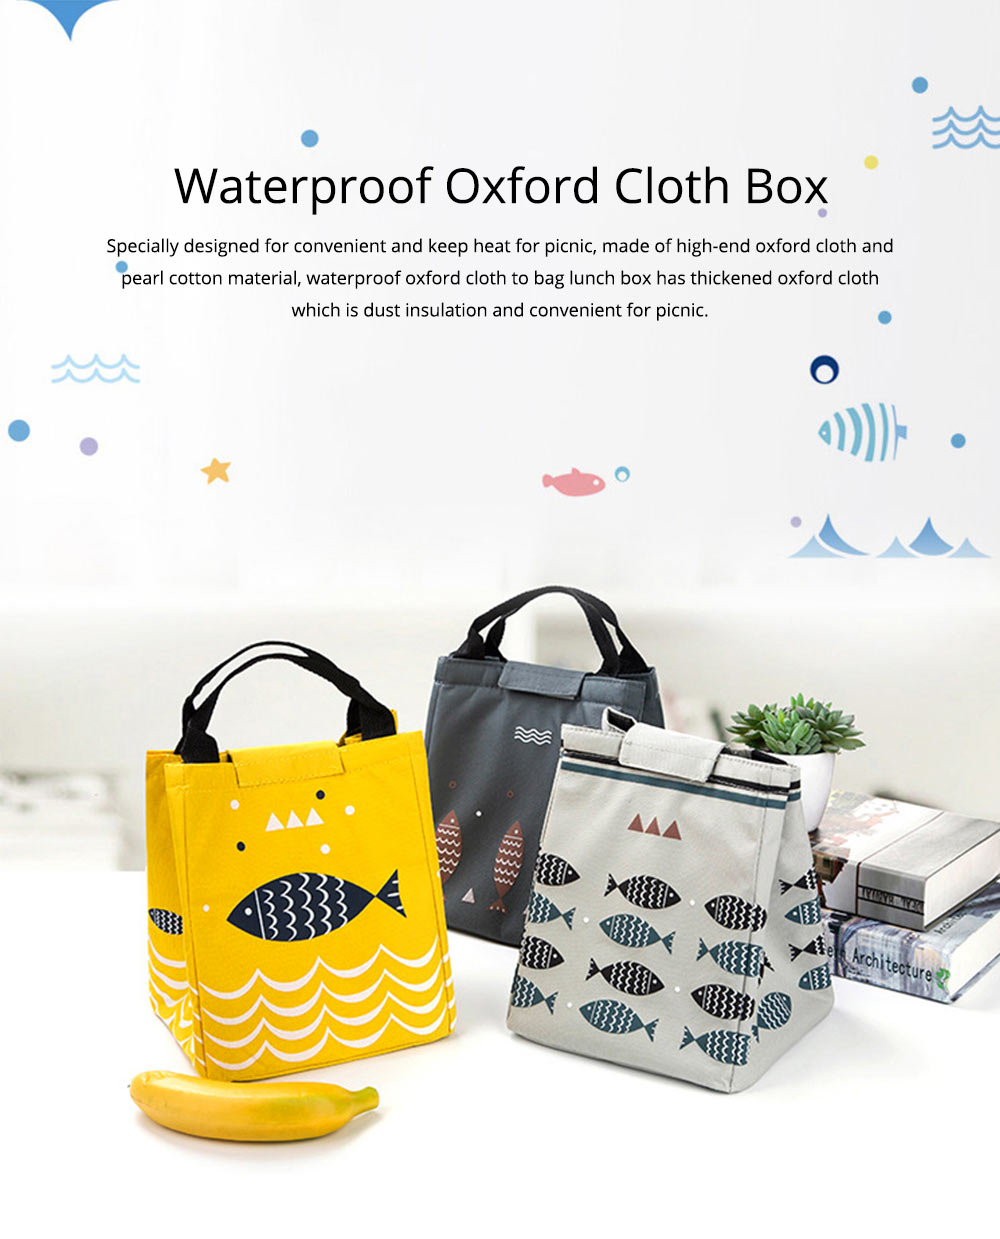 Waterproof Oxford Cloth to Bag Lunch Box Bag with Rice Bag with Heat Preservation & Large Capacity for Going to Work, School, Travel 0